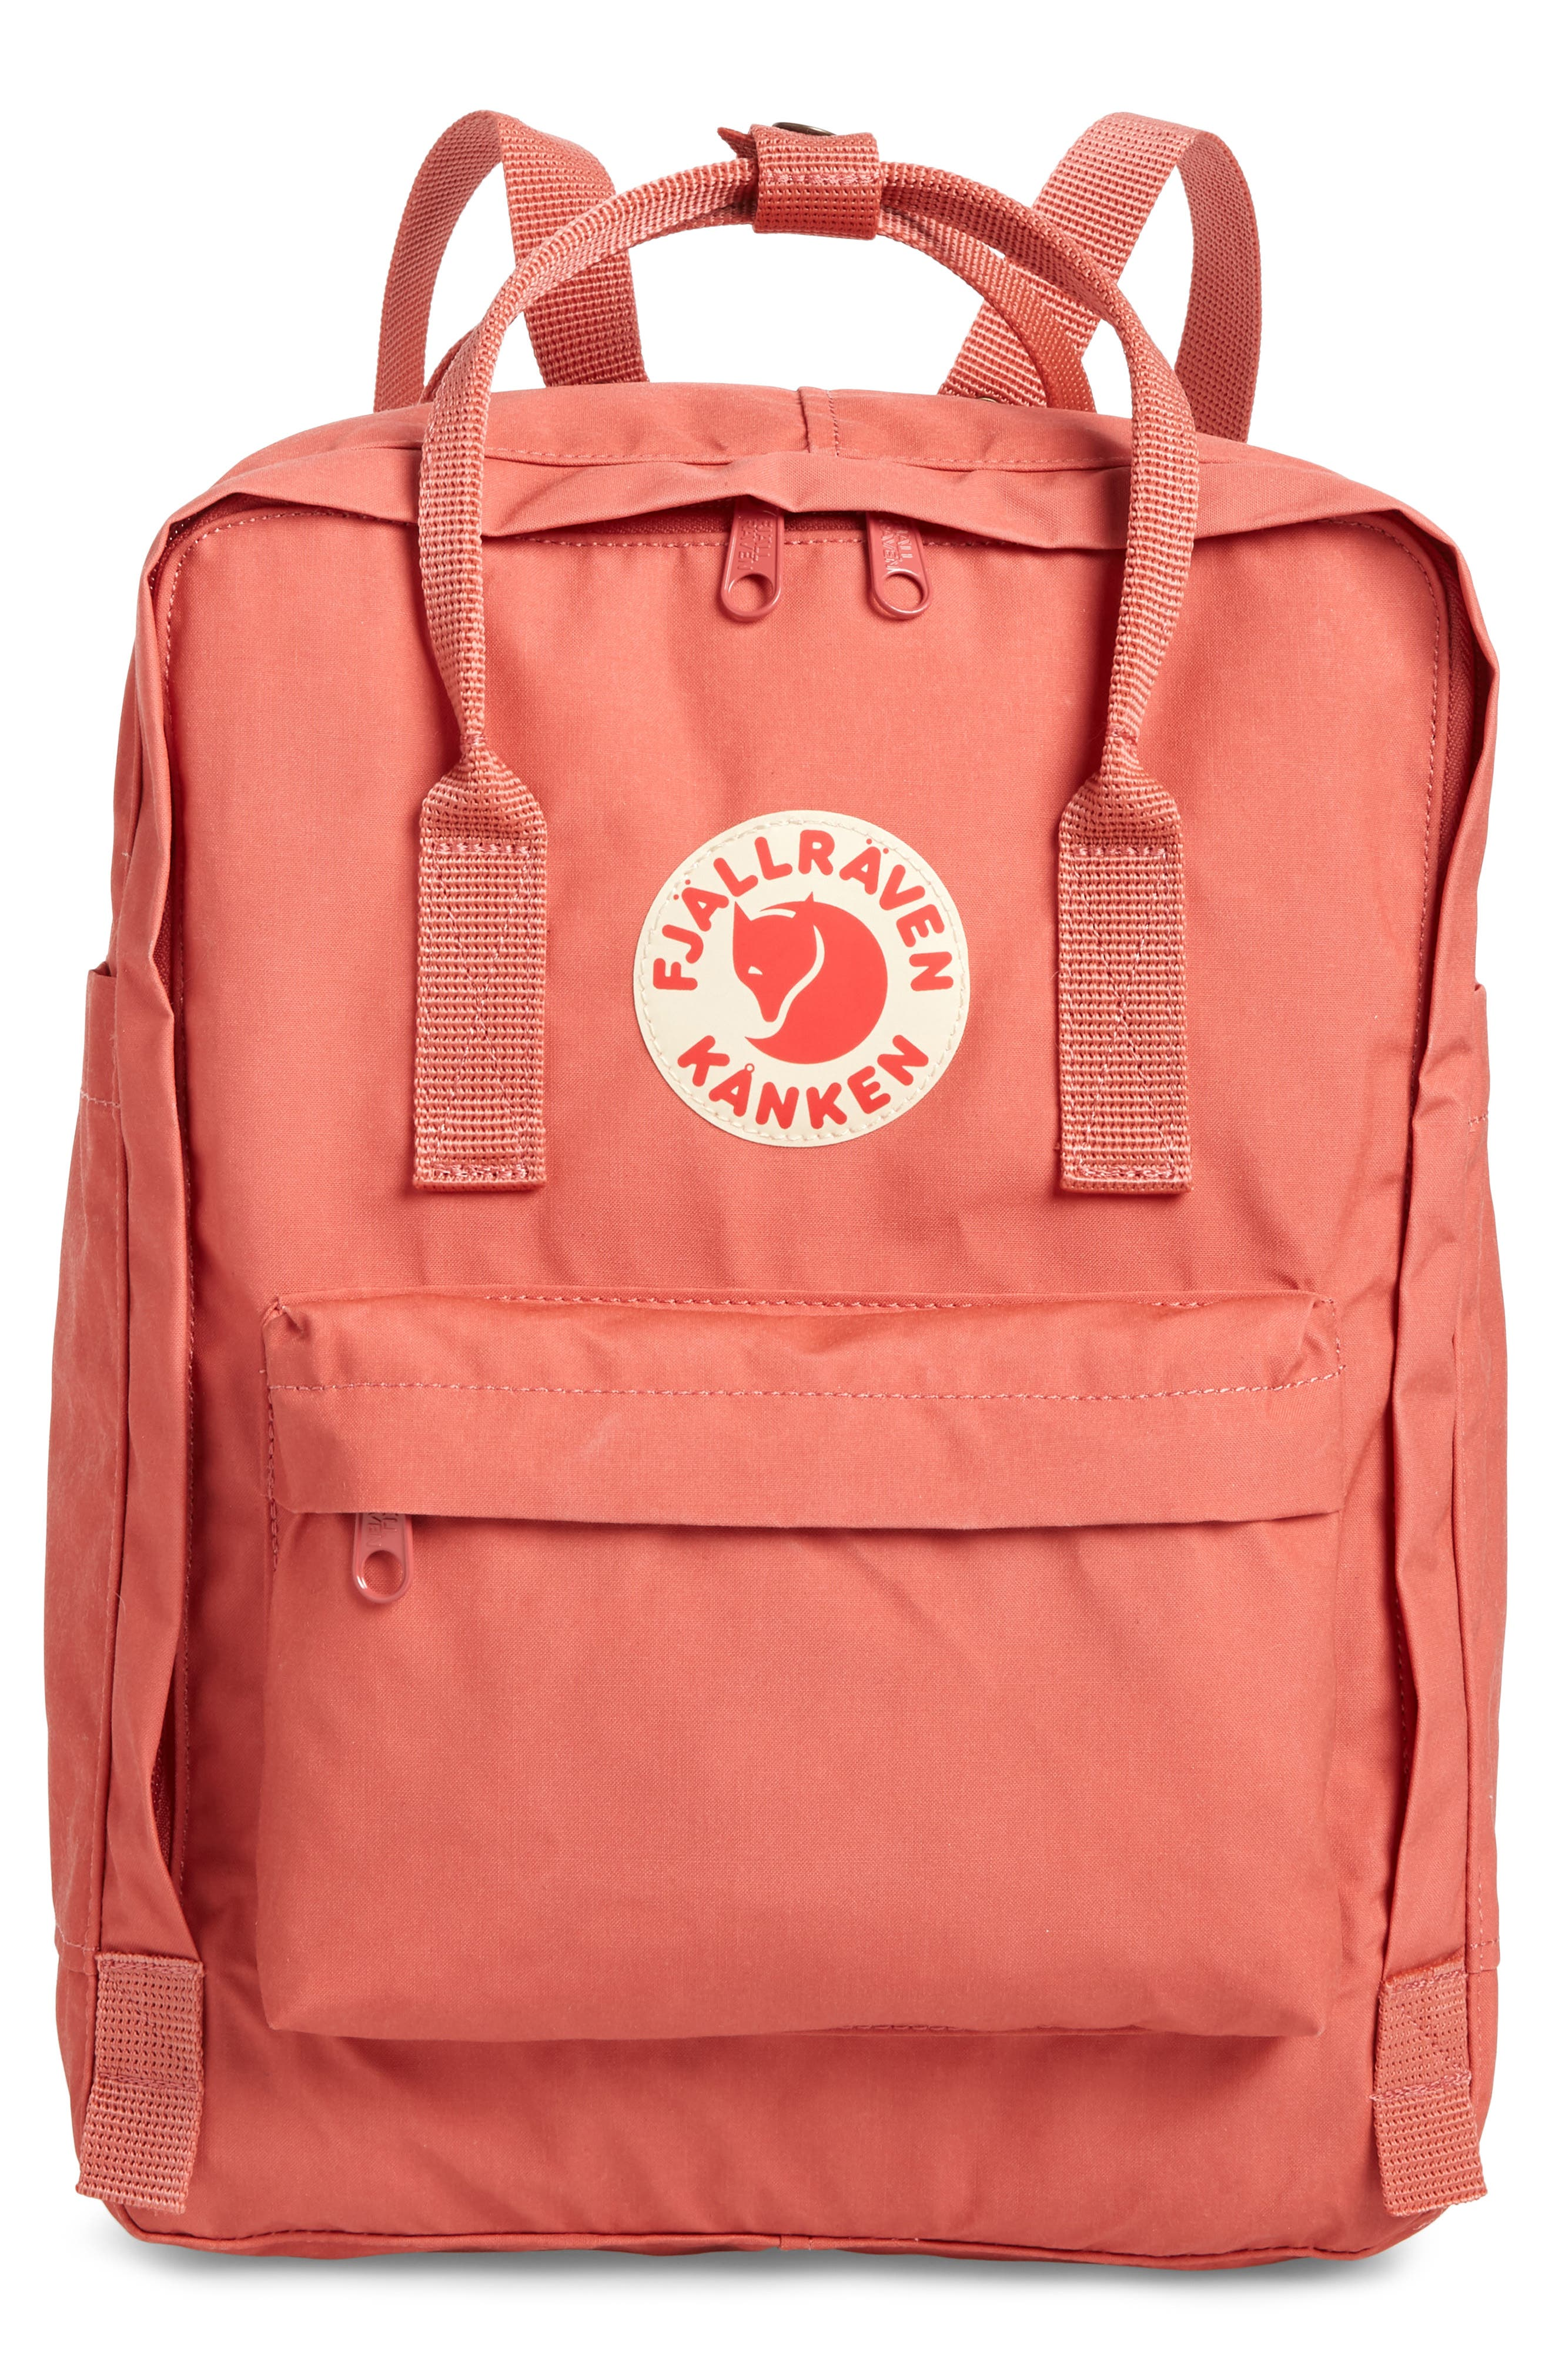 FJÄLLRÄVEN, Kånken Water Resistant Backpack, Main thumbnail 1, color, DAHLIA